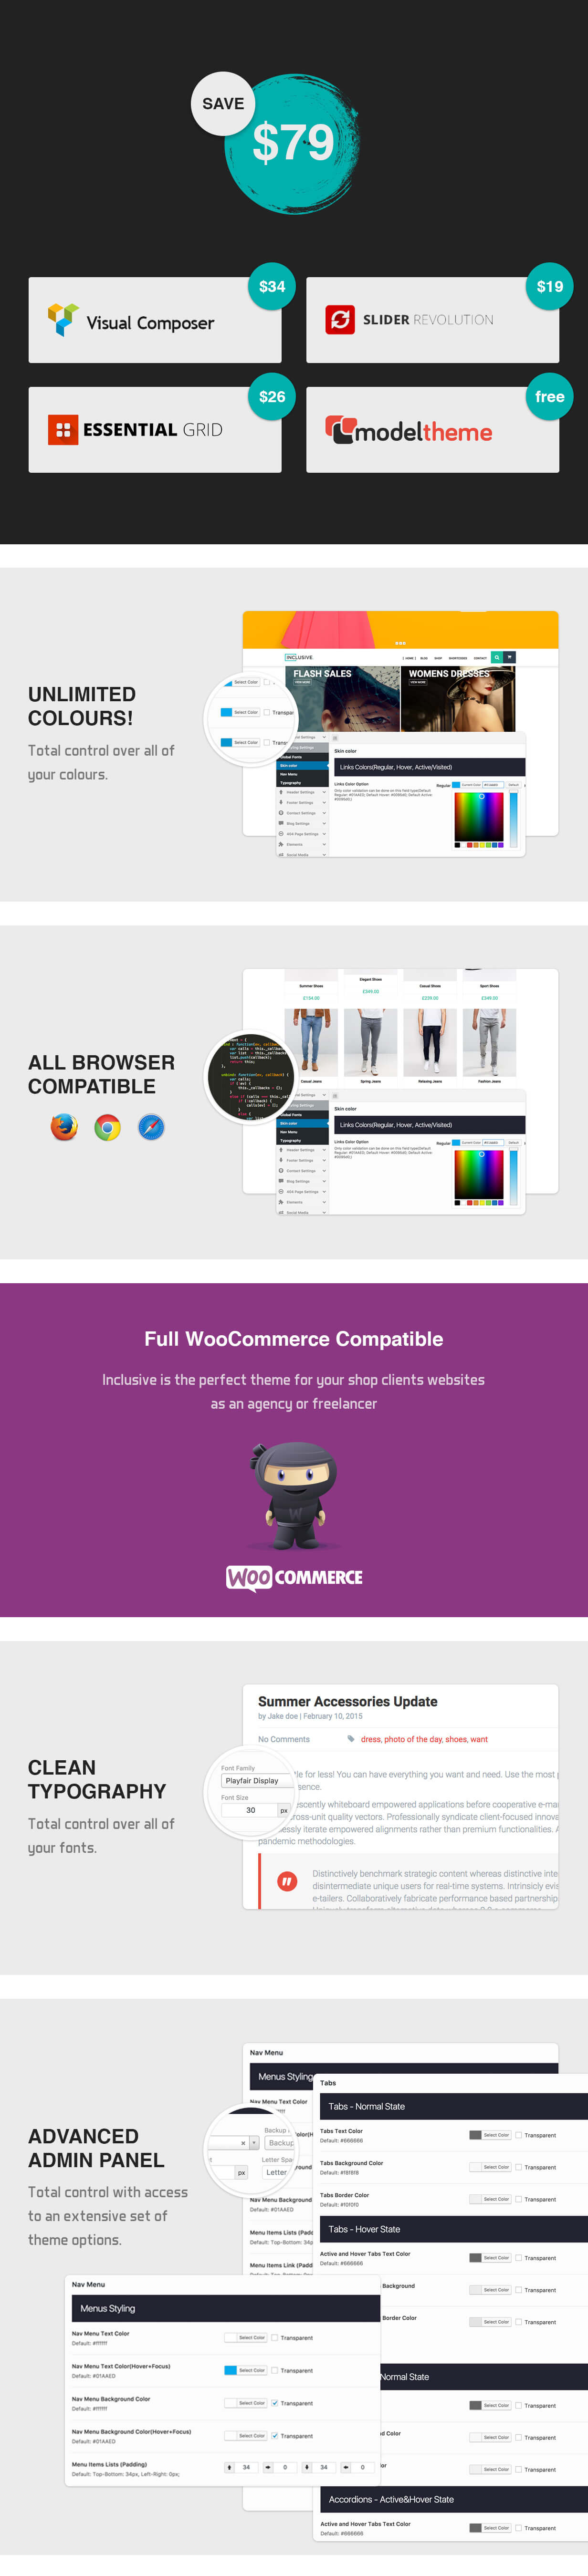 Inclusive - Multipurpose WooCommerce WordPress Theme - 6